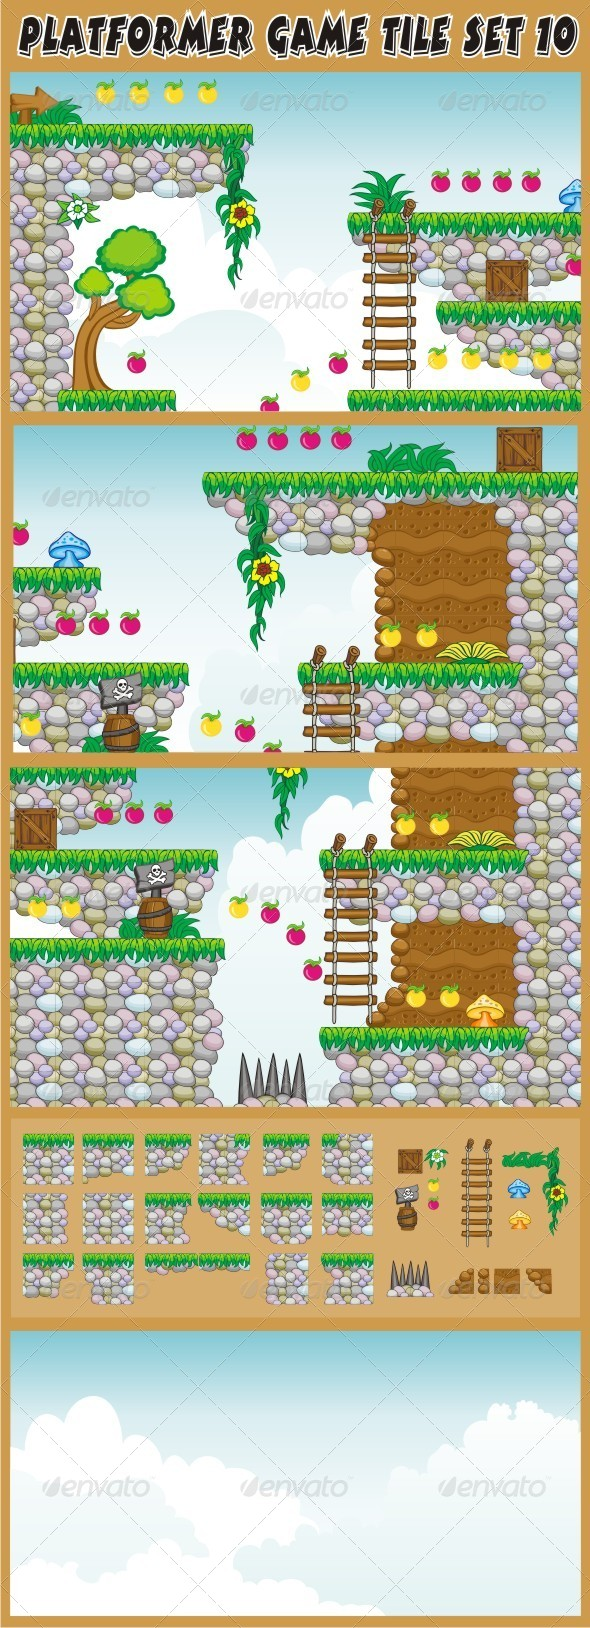 Platformer Game Tile Set 10 - Tilesets Game Assets